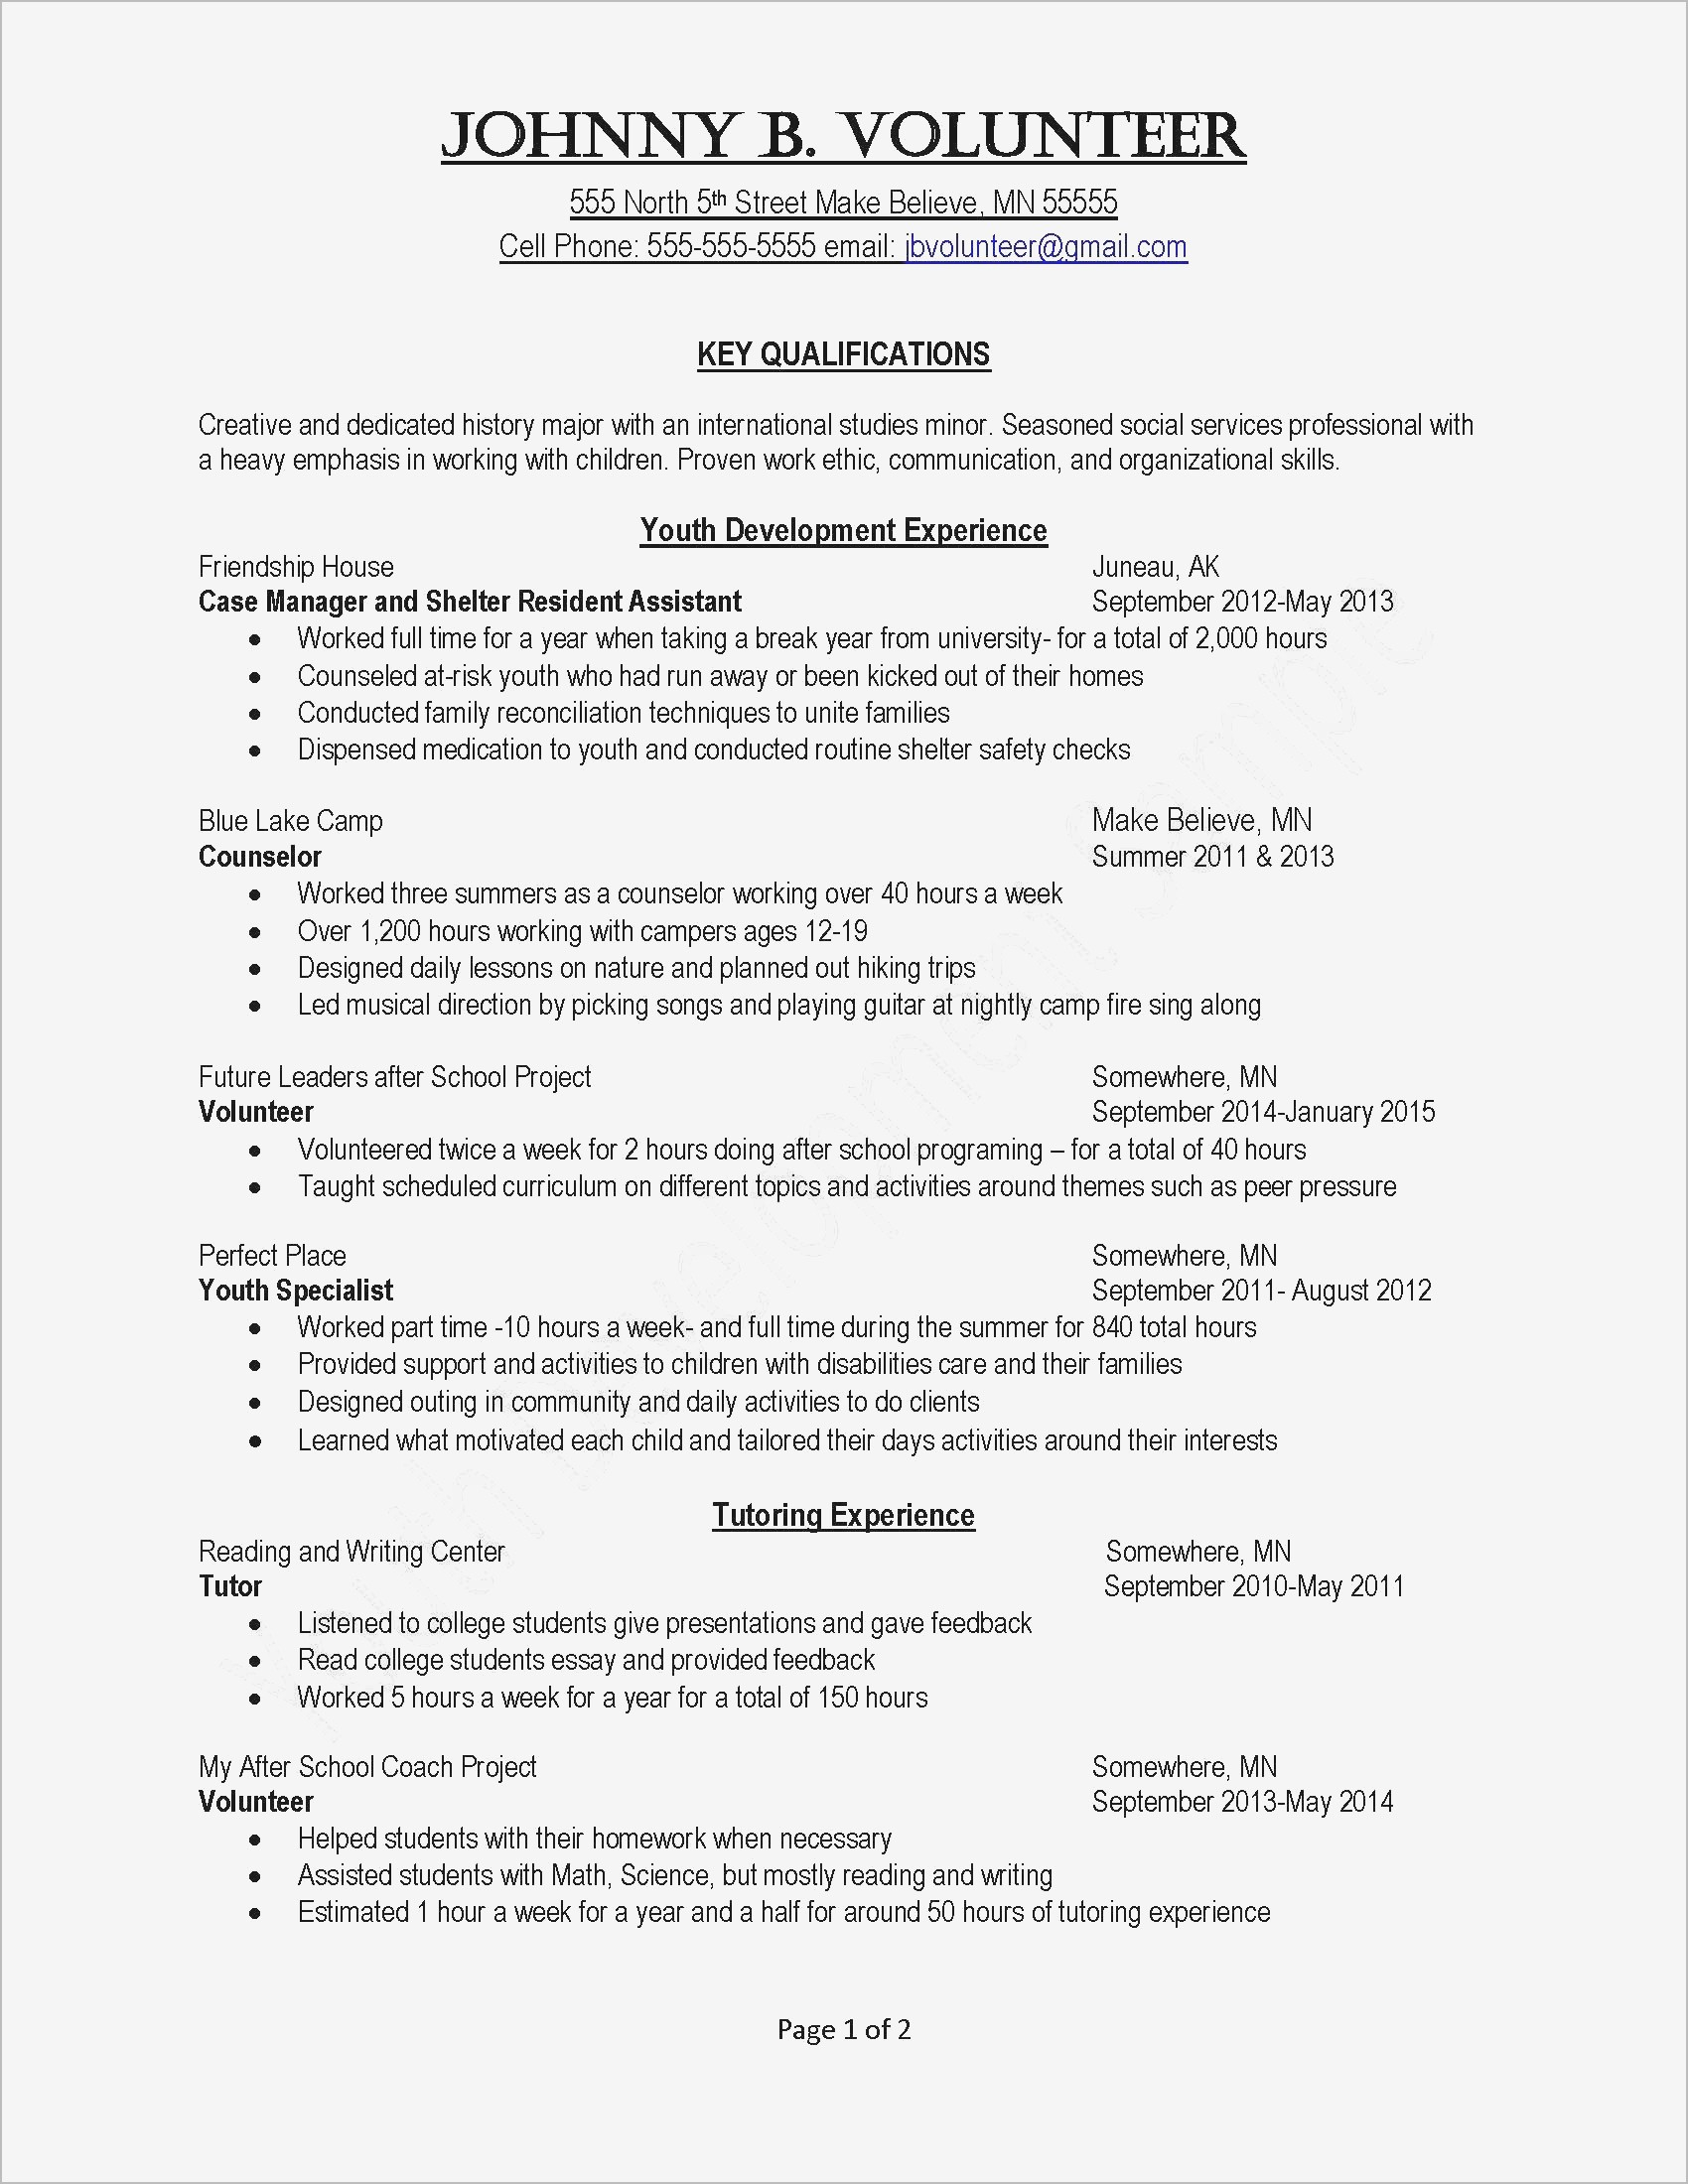 Lease Renewal Reminder Letter Template - Example Resume Cover Letter Ideas